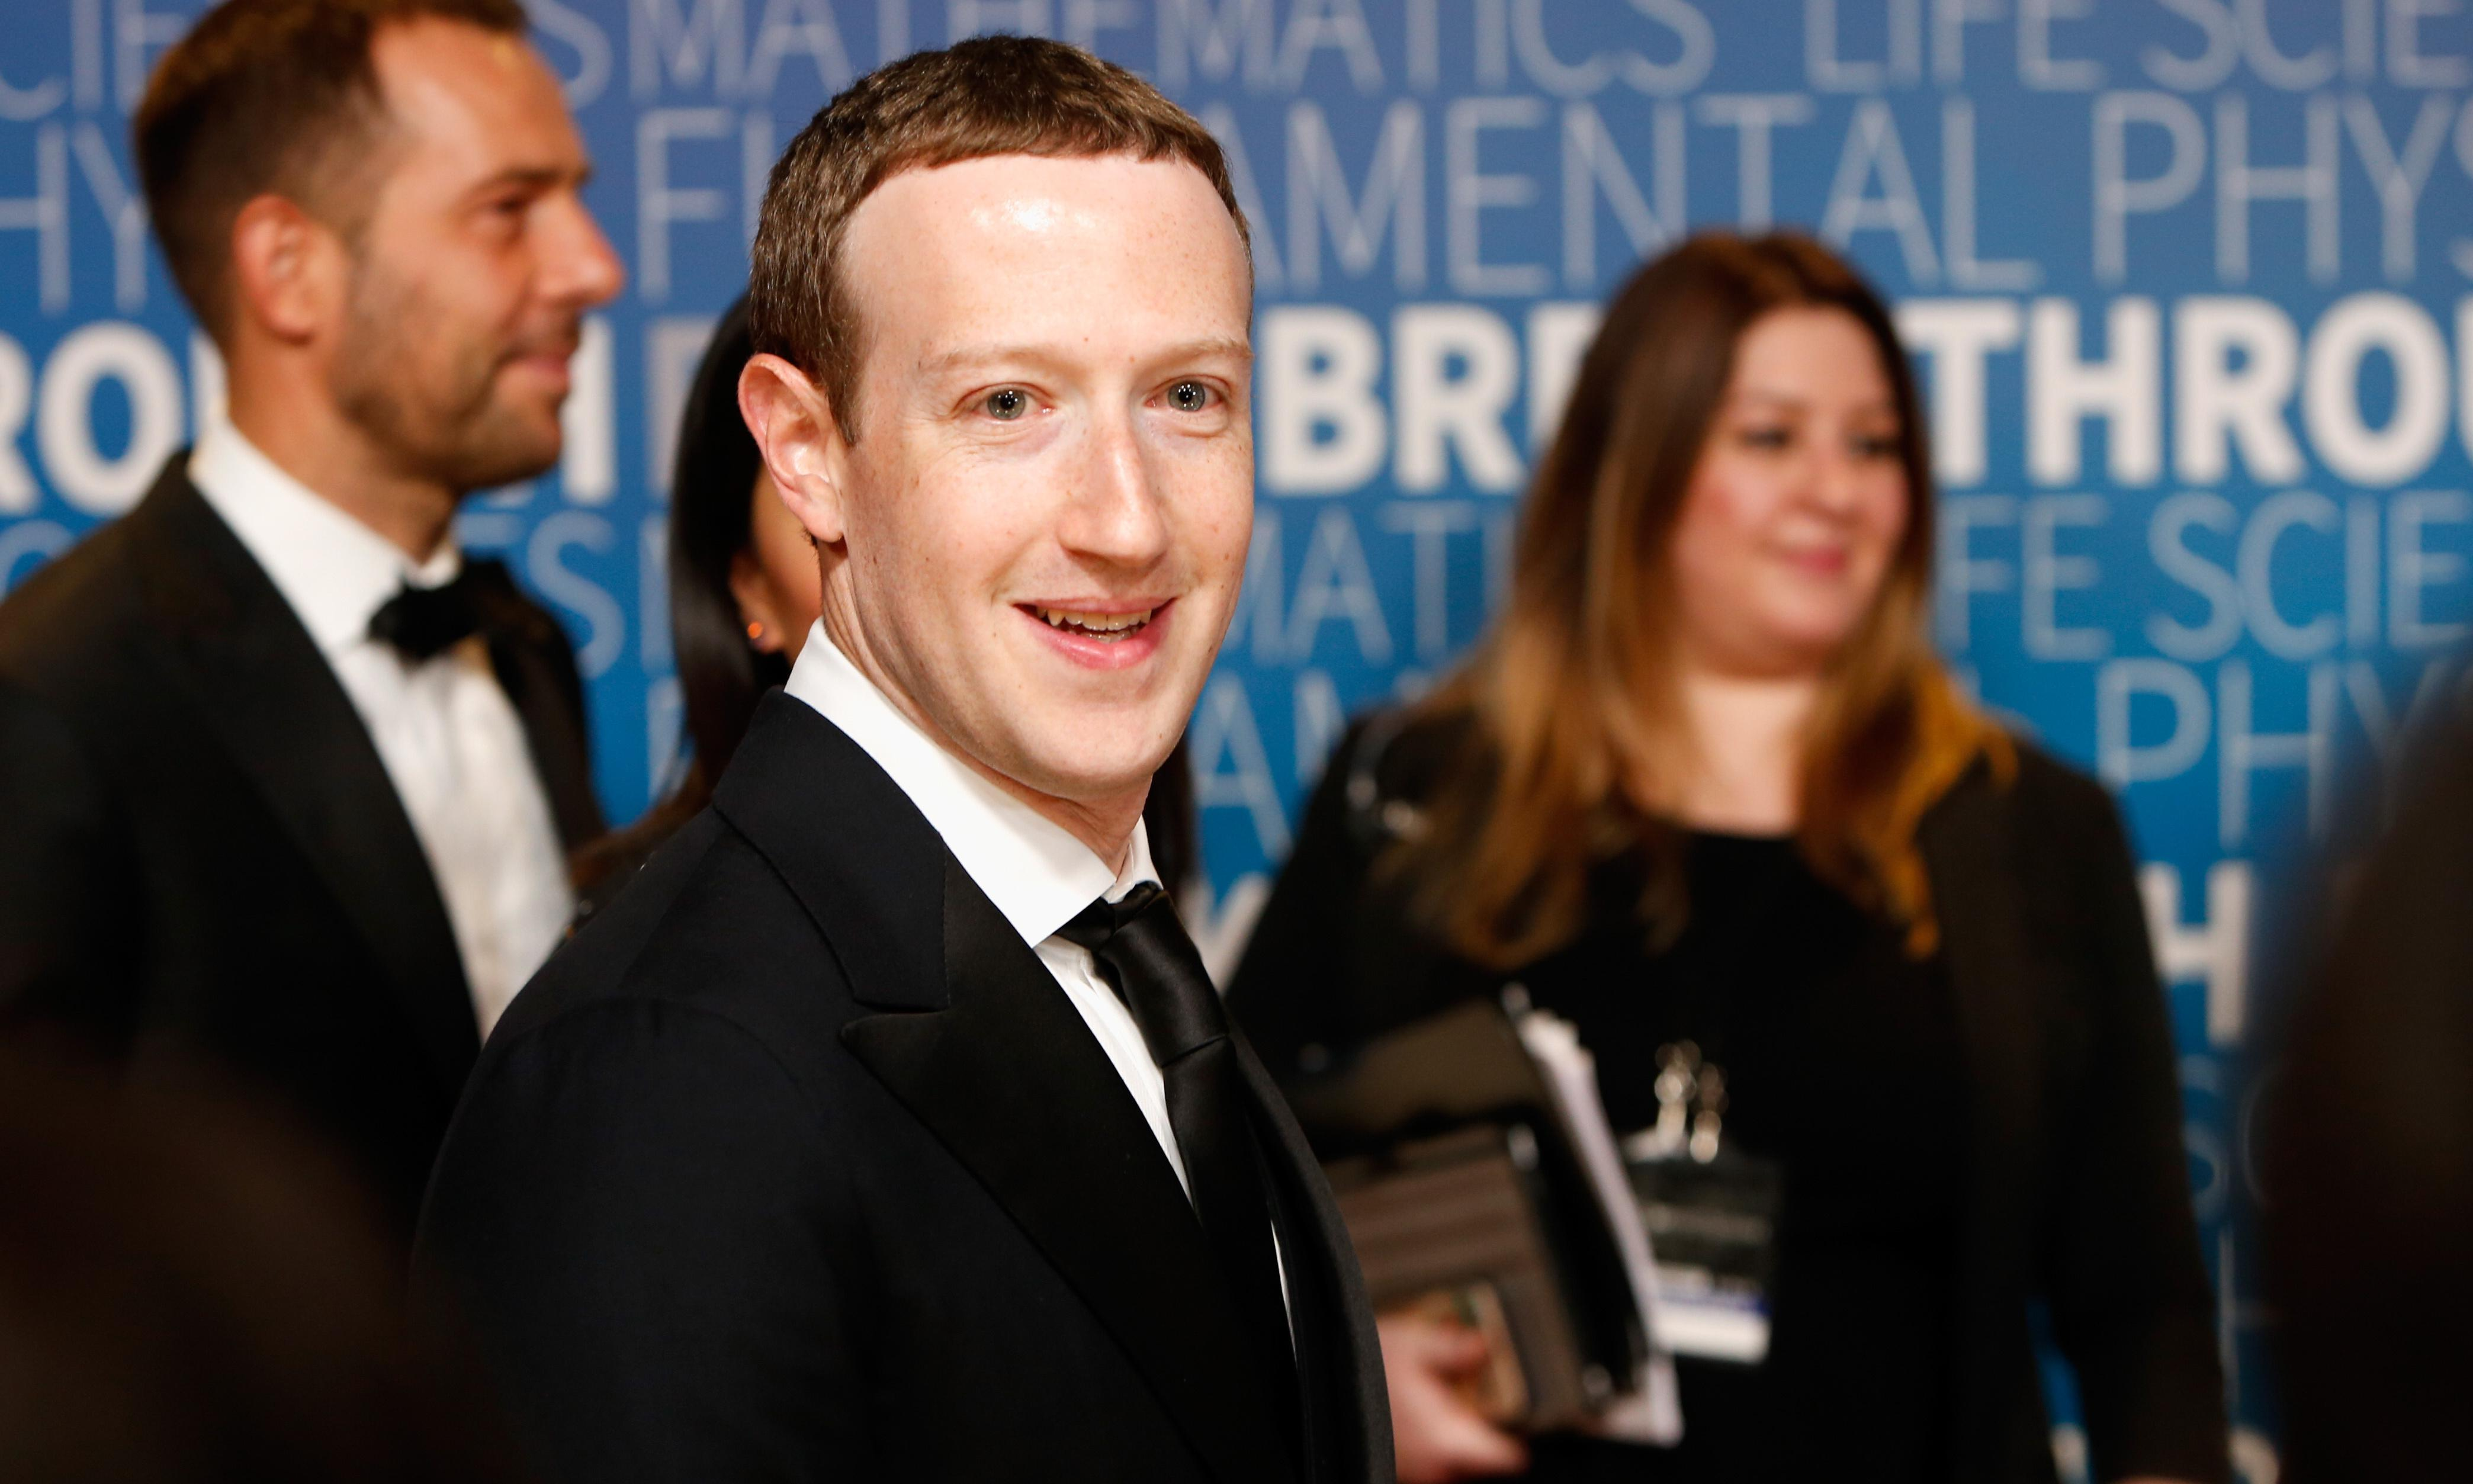 How Republican firm's plan to defend Facebook by attacking rivals backfired